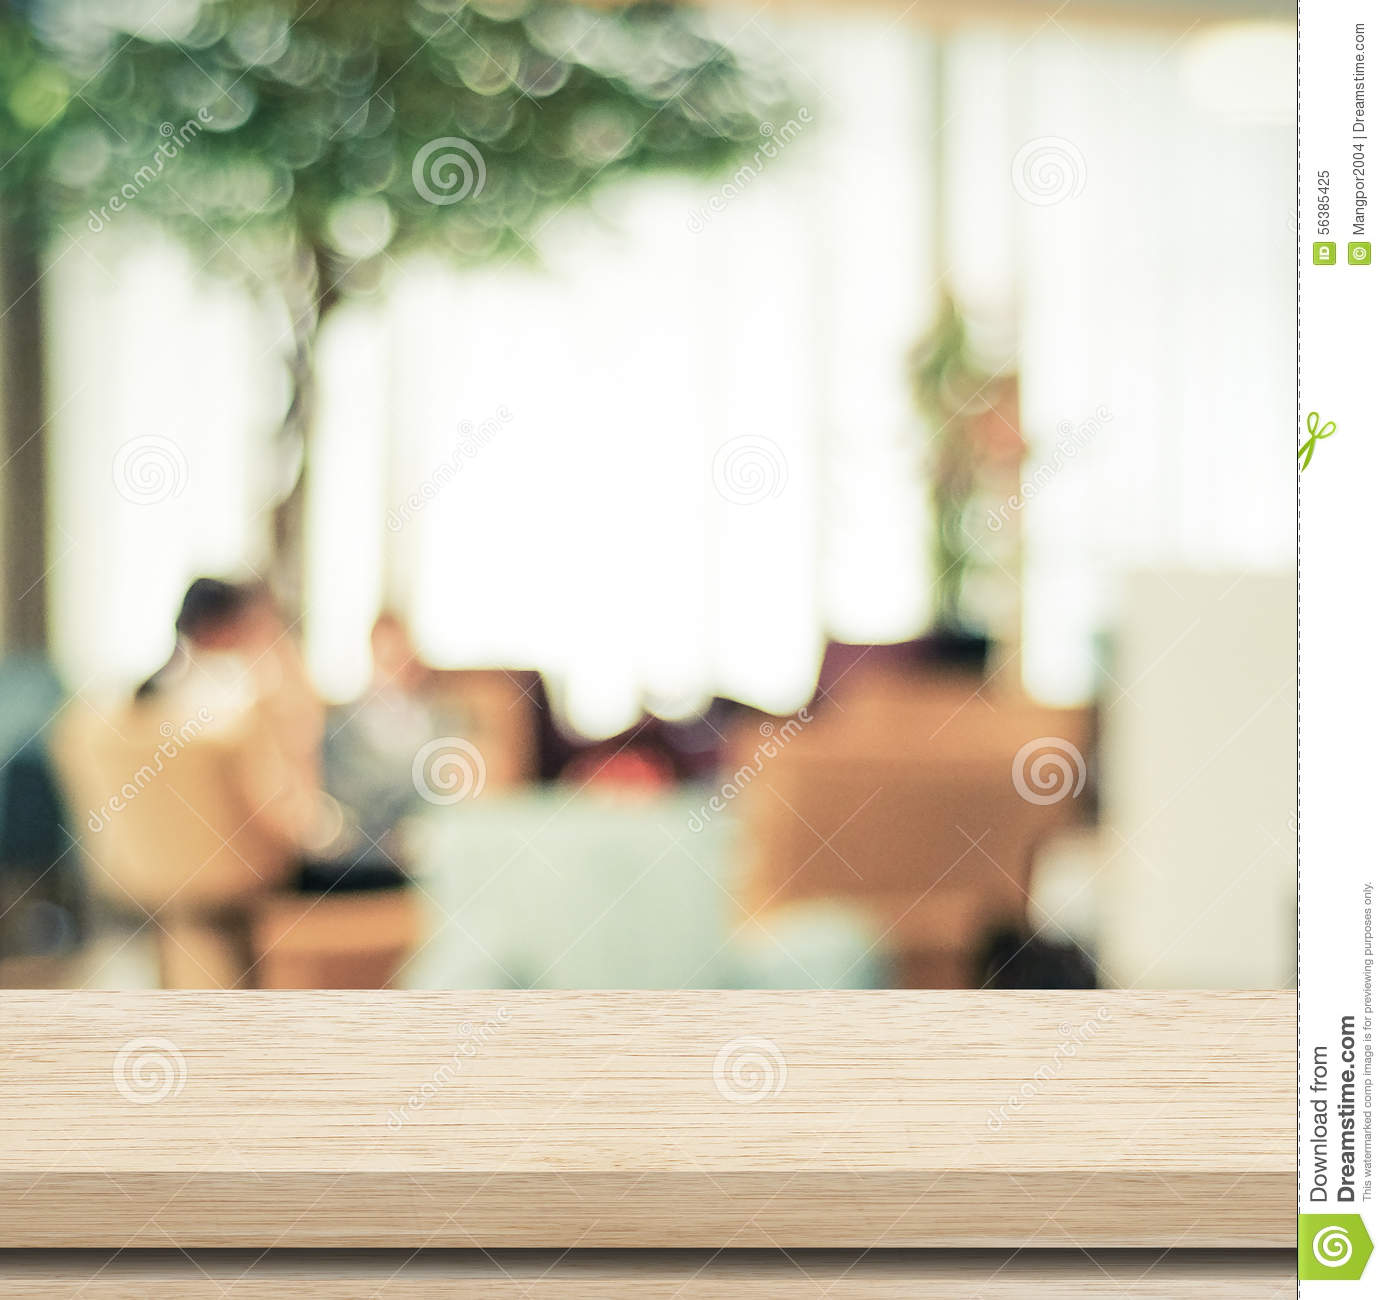 Empty wood table and blurred living room background stock photo - Background Blurred Bokeh Cafe Display Empty Light Product Table Wood